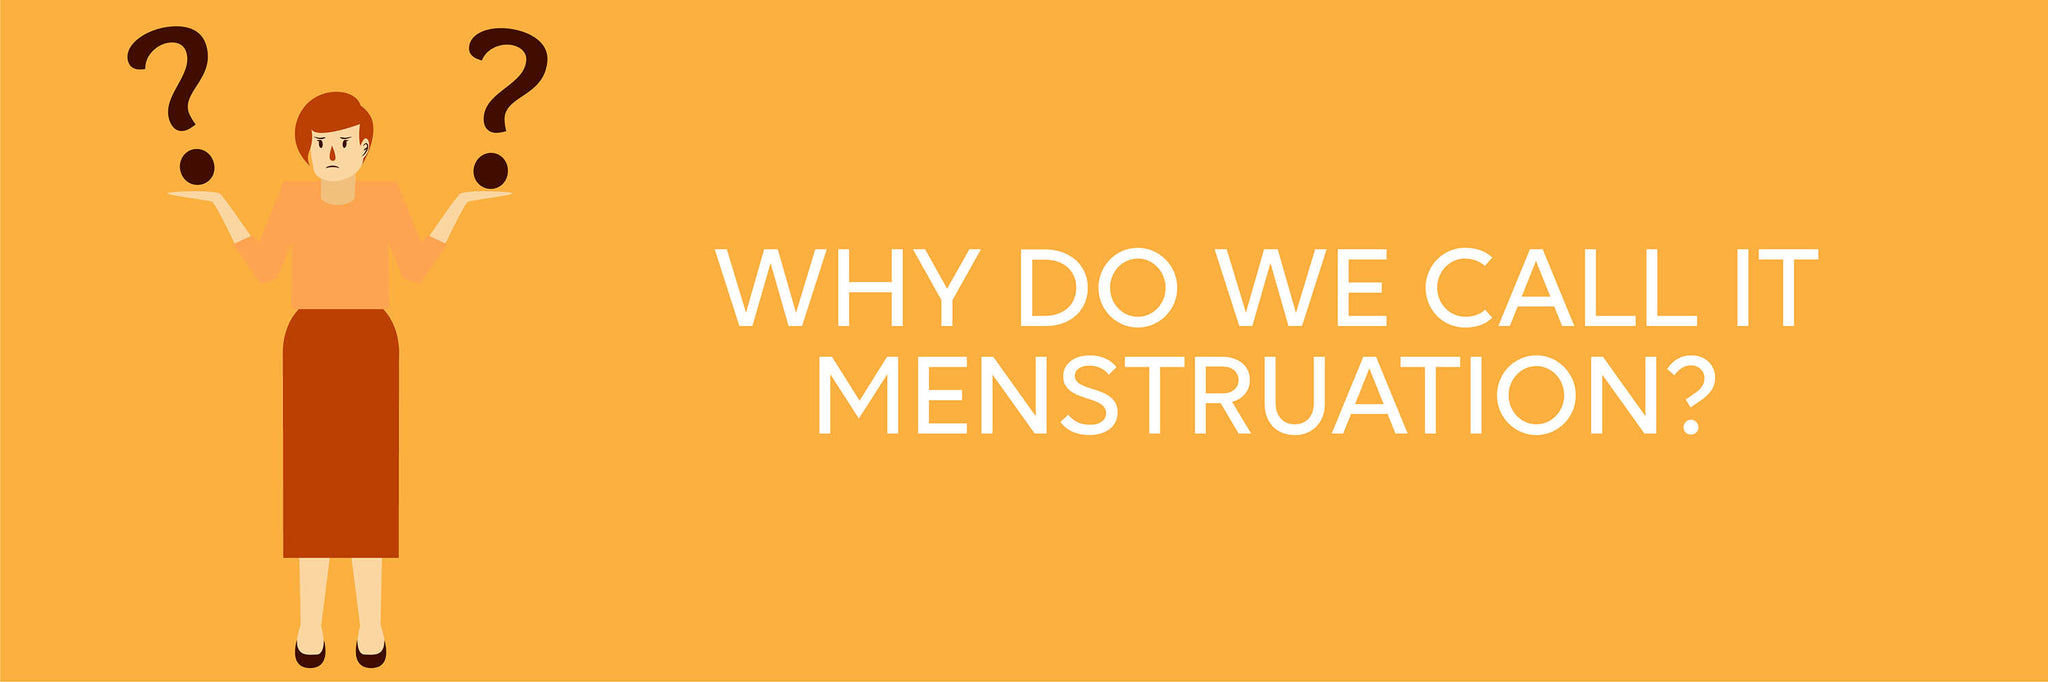 why is it called menstruation?